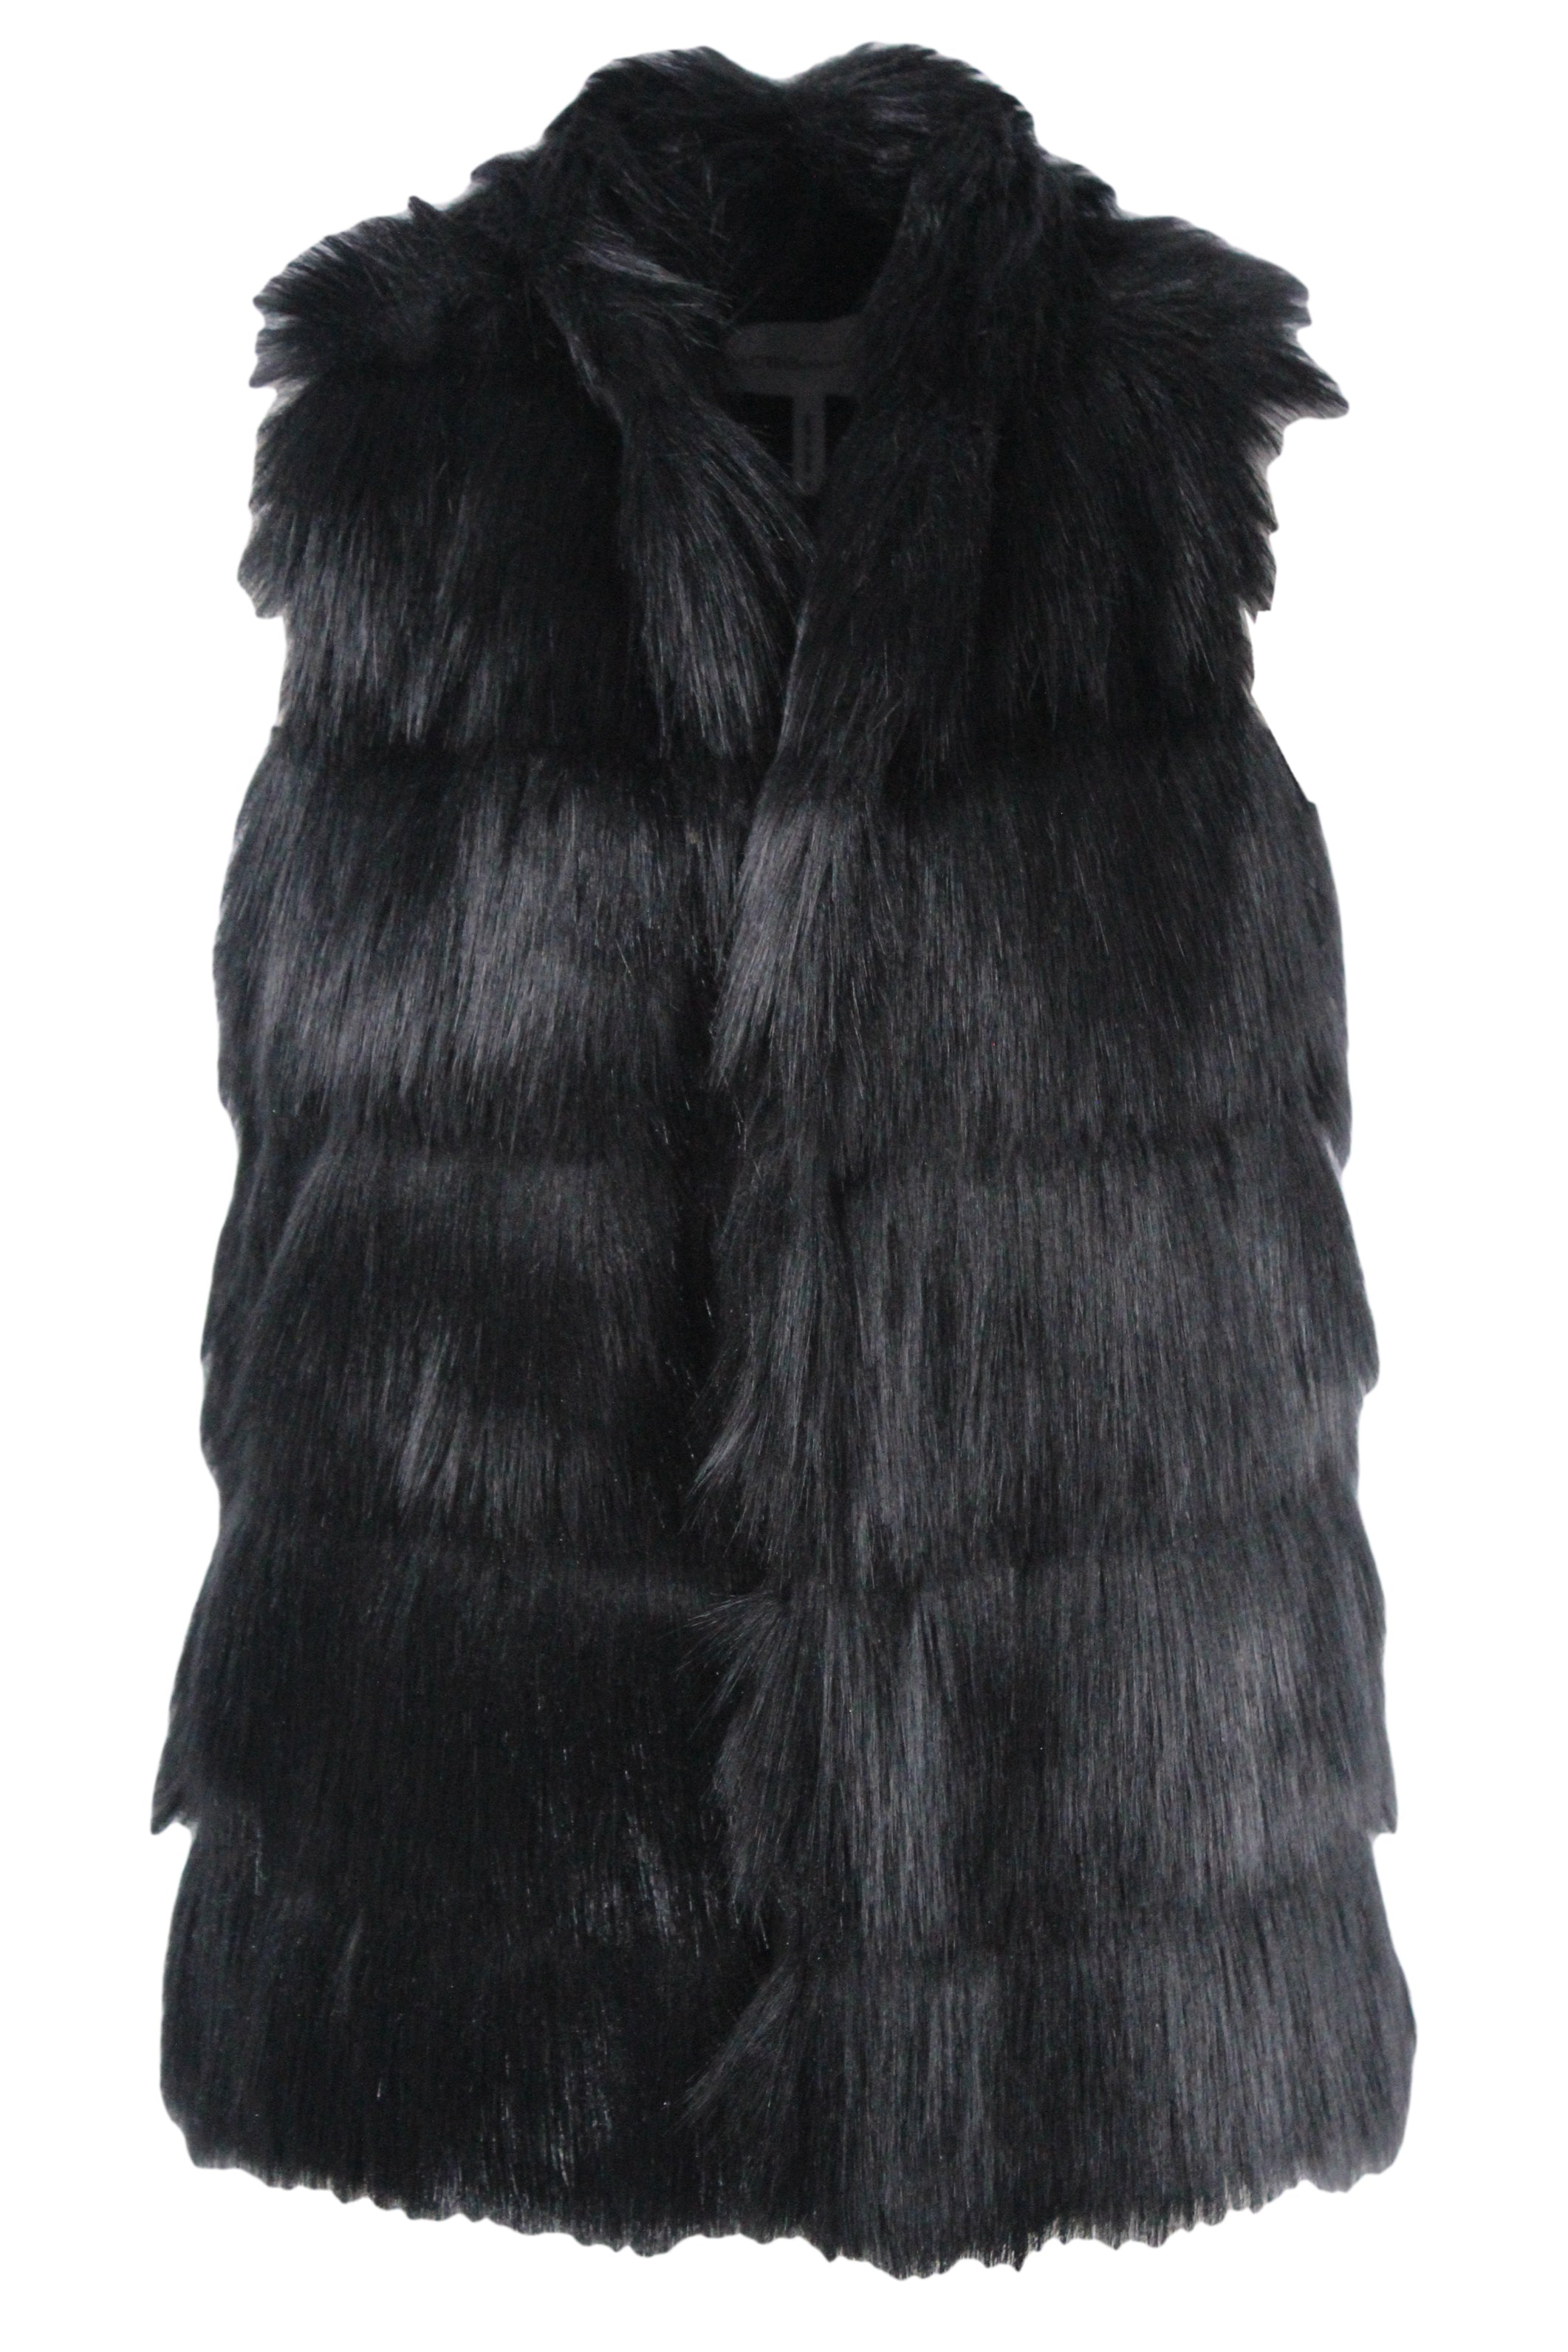 bcbgeneration black tiered faux fur vest. features two concealed side pockets & an open front.